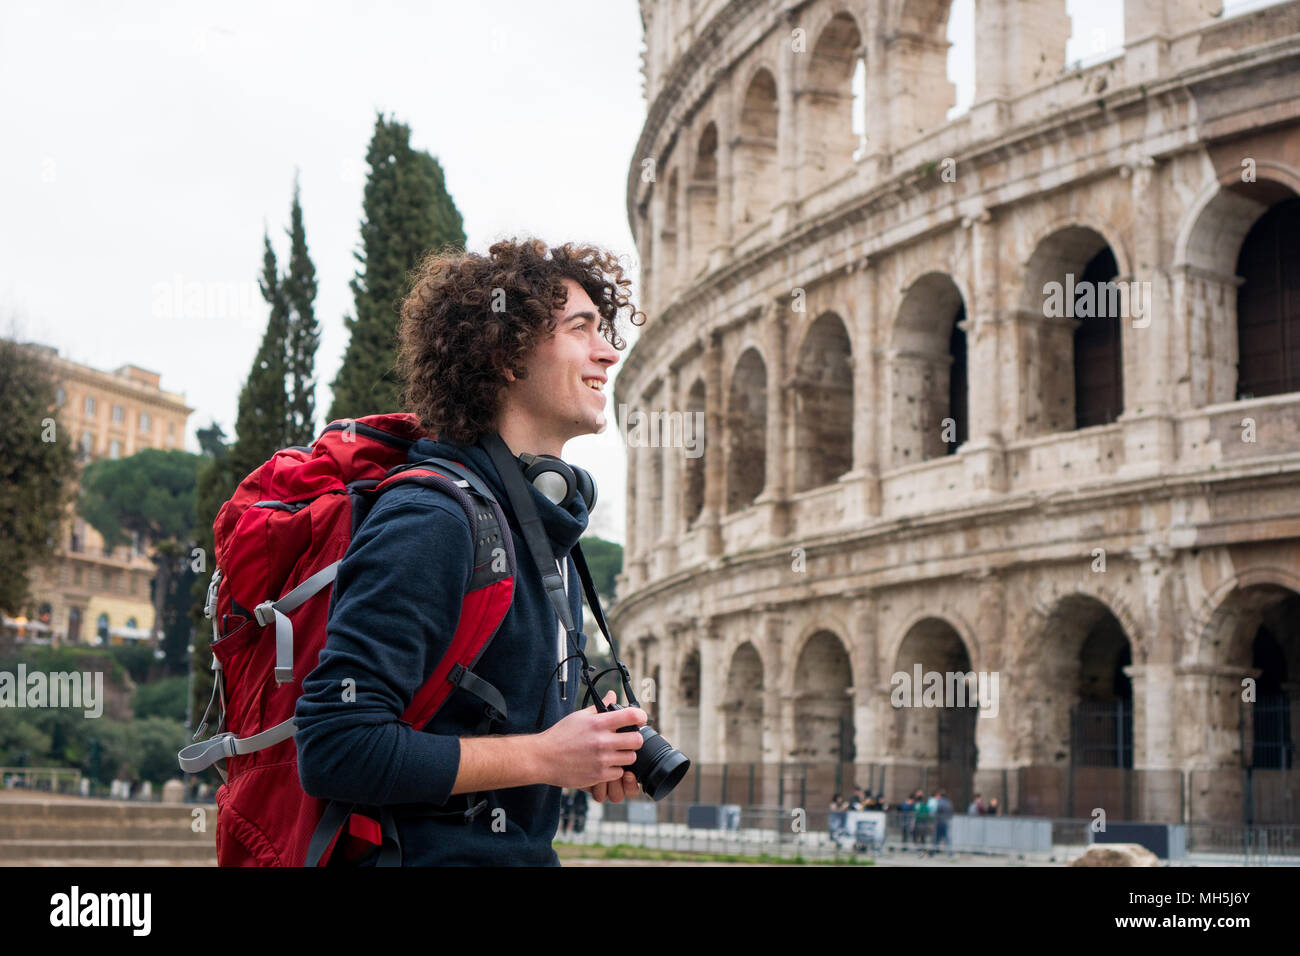 Handsome young tourist man with curly hair with a camera and backpack taking pictures of Colosseum in Rome, Italy. Young tourist taking pictures of Co - Stock Image